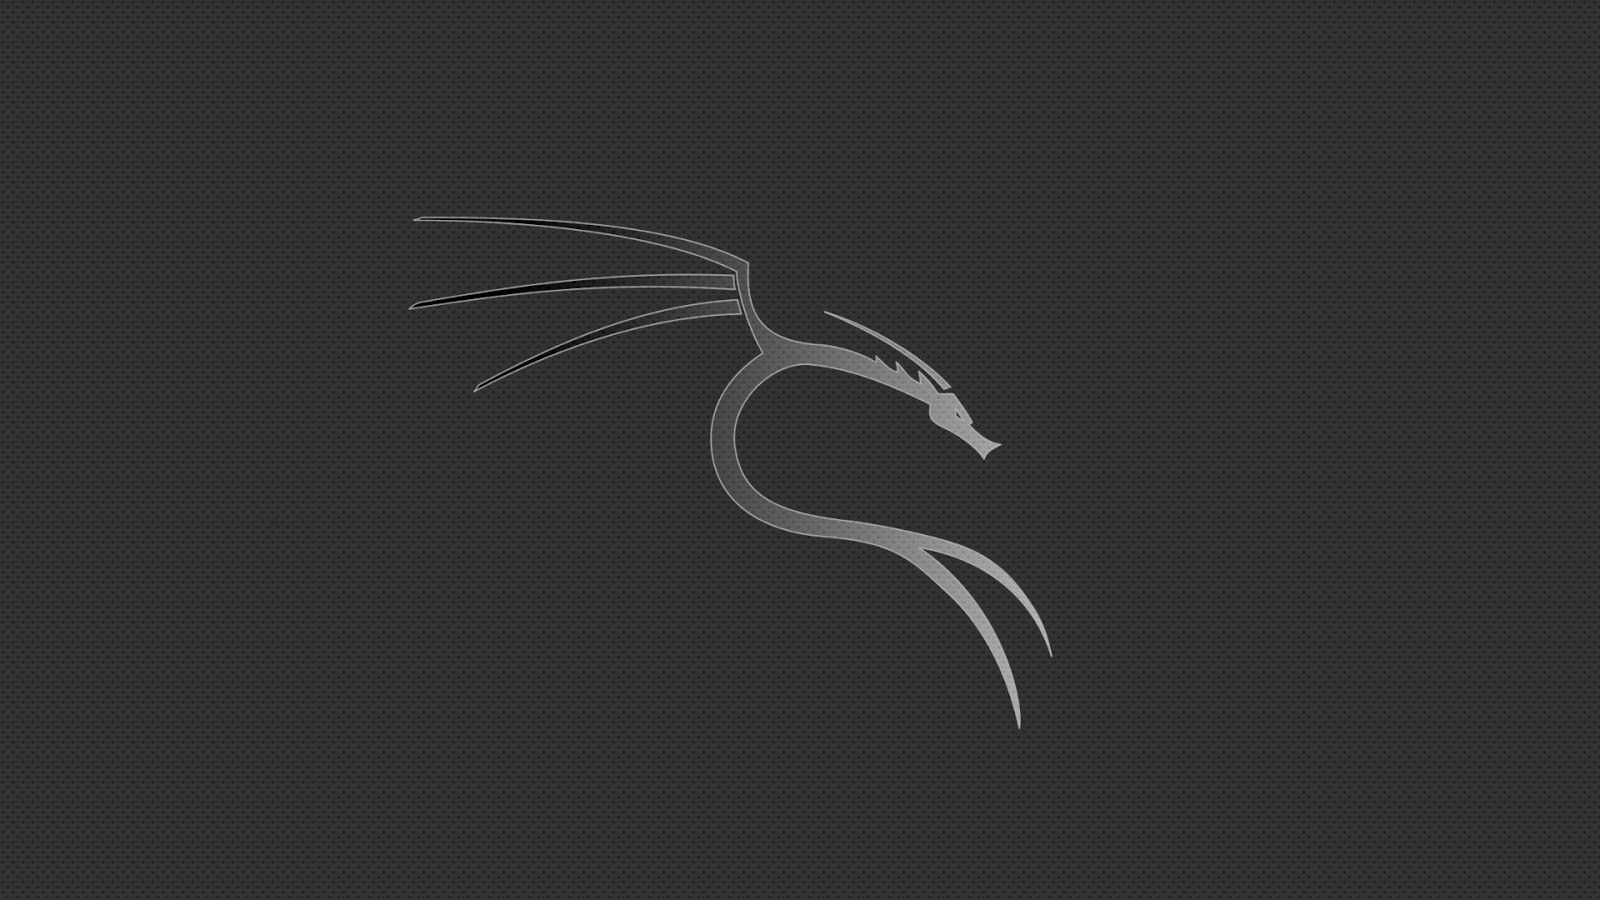 Github Matir Collected Wallpapers Collected Wallpapers From Around The Web